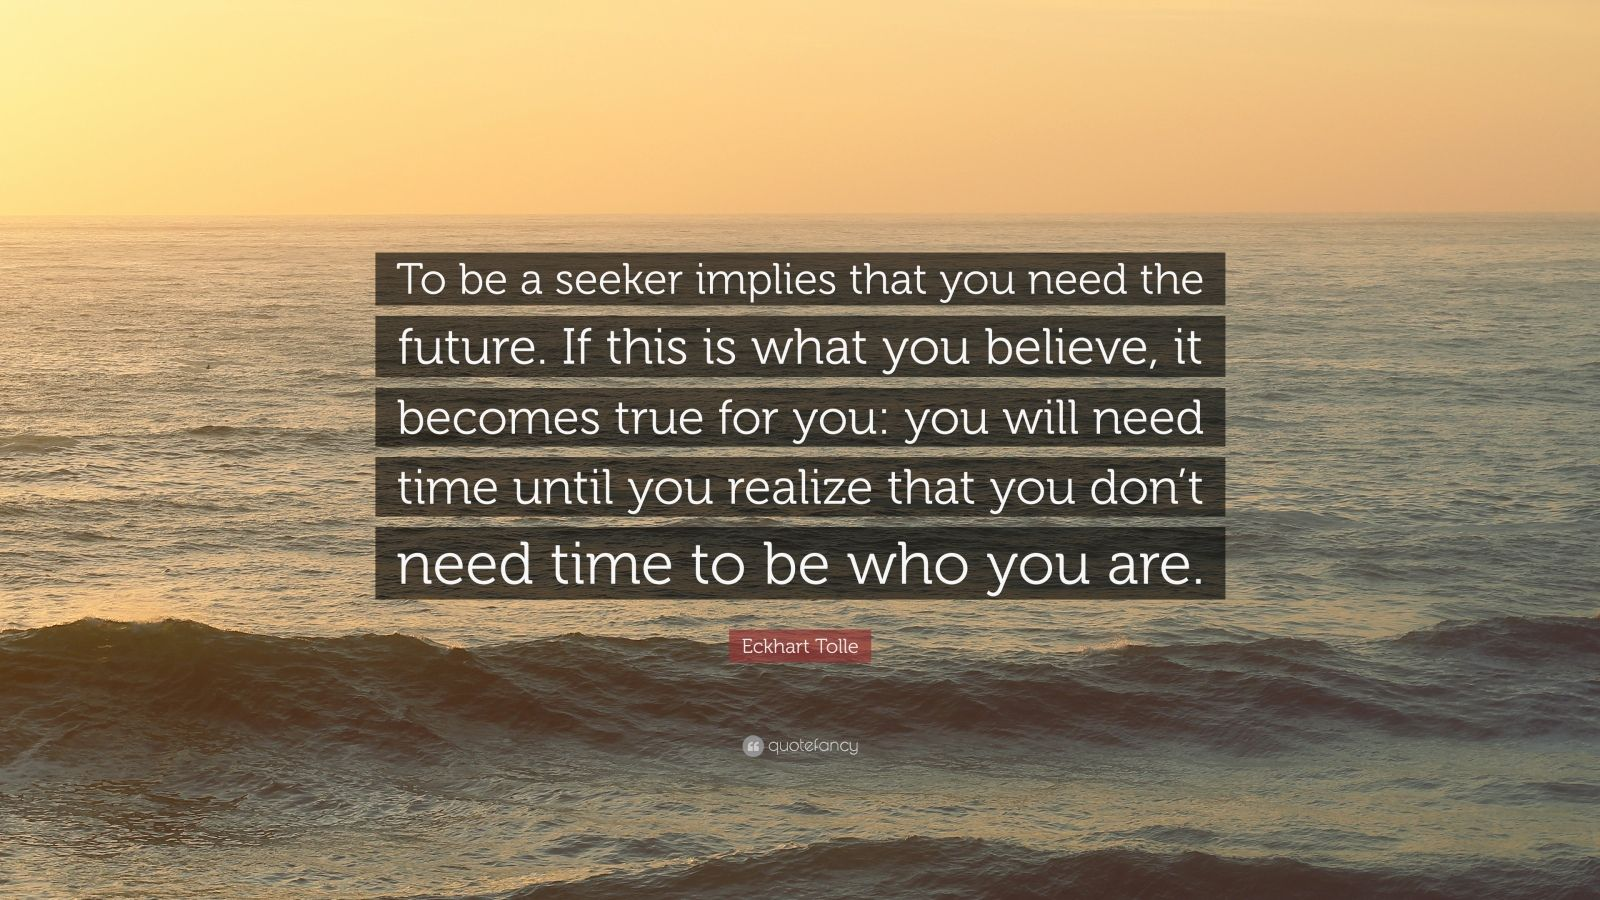 "Eckhart Tolle Quote: ""To be a seeker implies that you need the future. If this is what you believe, it becomes true for you: you will need time until you realize that you don't need time to be who you are."""